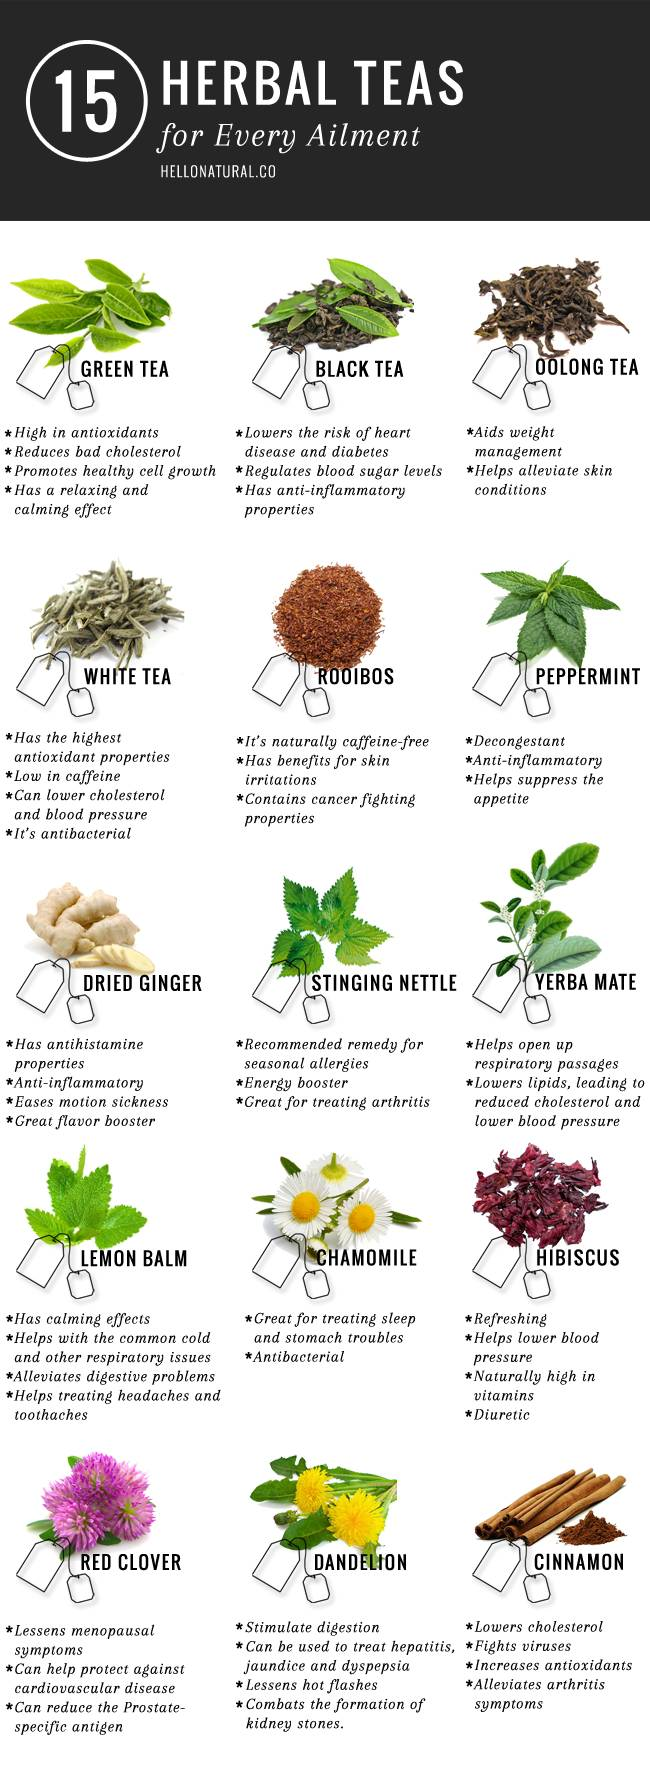 15-herbal-teas-for-every-ailment